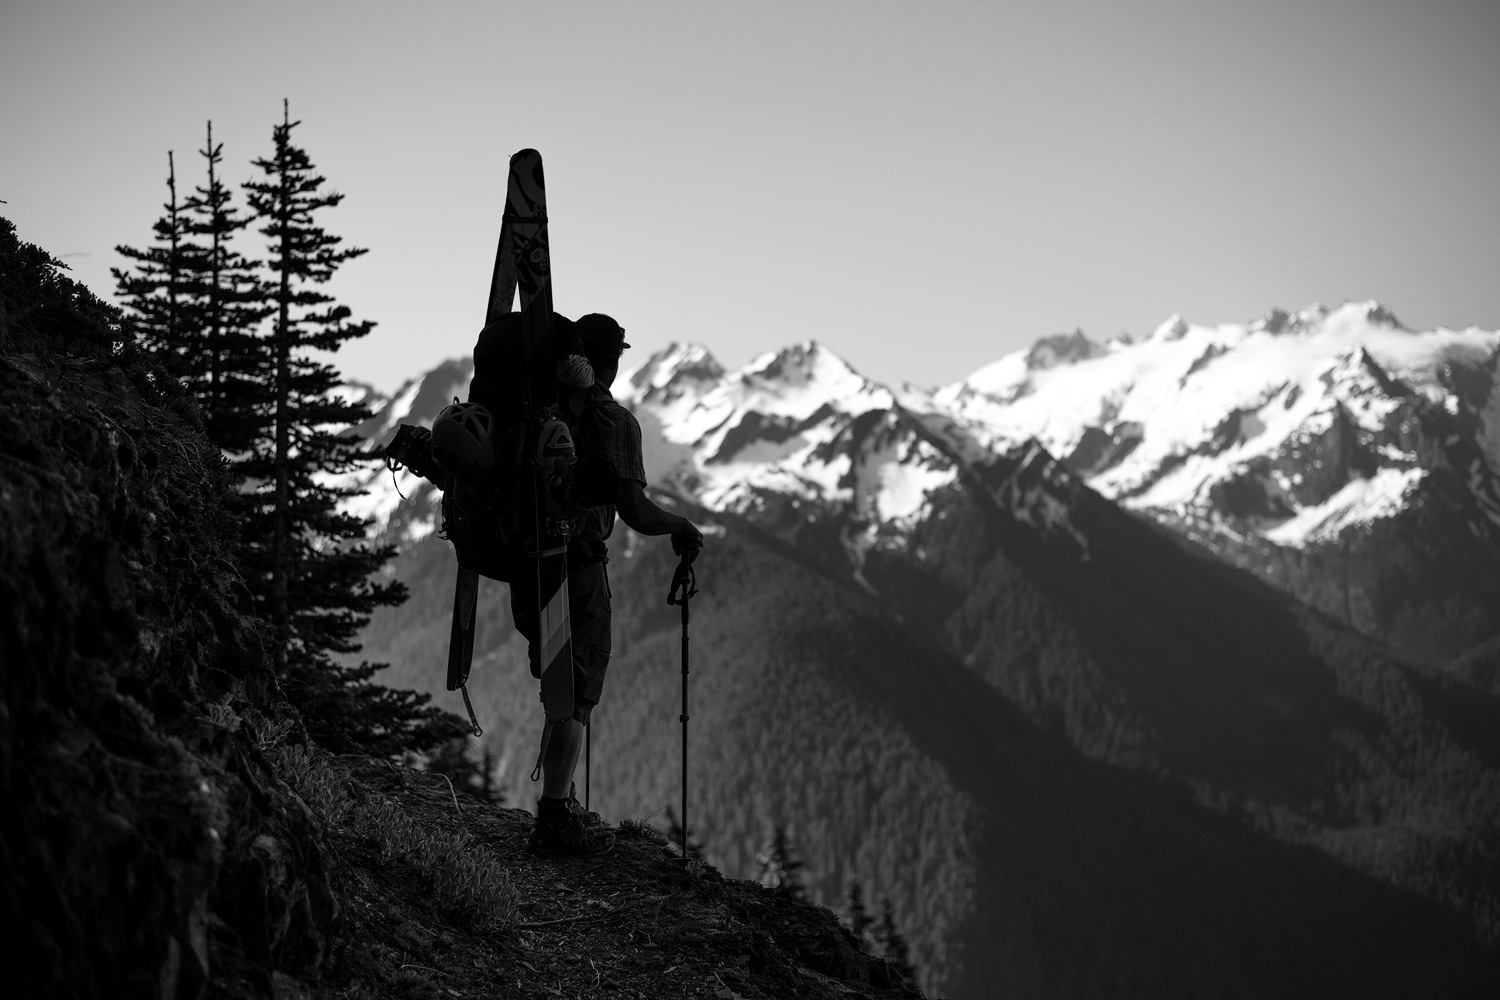 A backcountry skier with his skis attached to his backpack stands on a ridgetop overlooking mountains in Washington's Olympic Peninsula